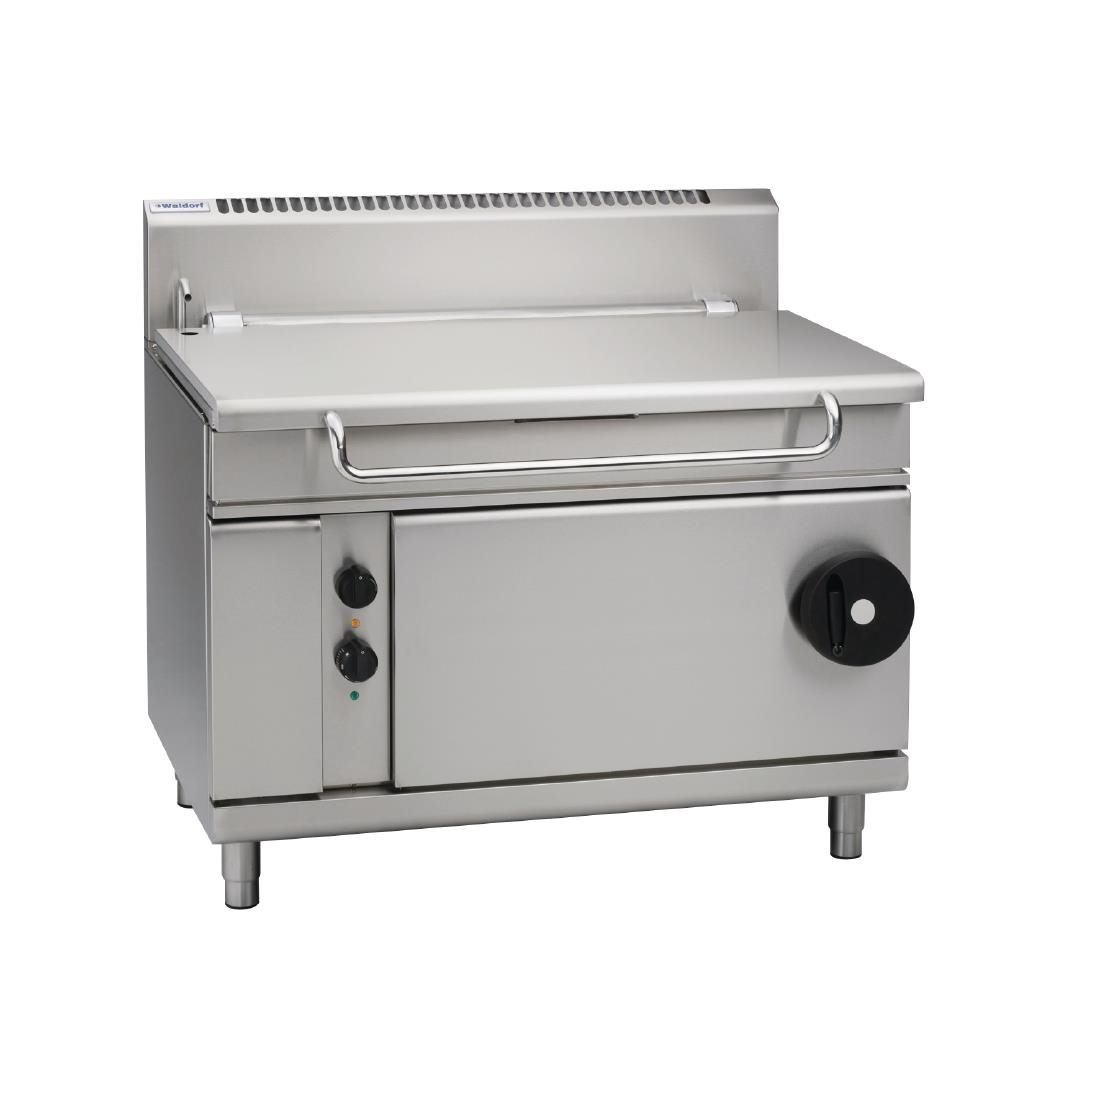 Waldorf by Moffat 1200mm 120 Ltr Bratt Pan with Manual Tilt LPG BP8120G